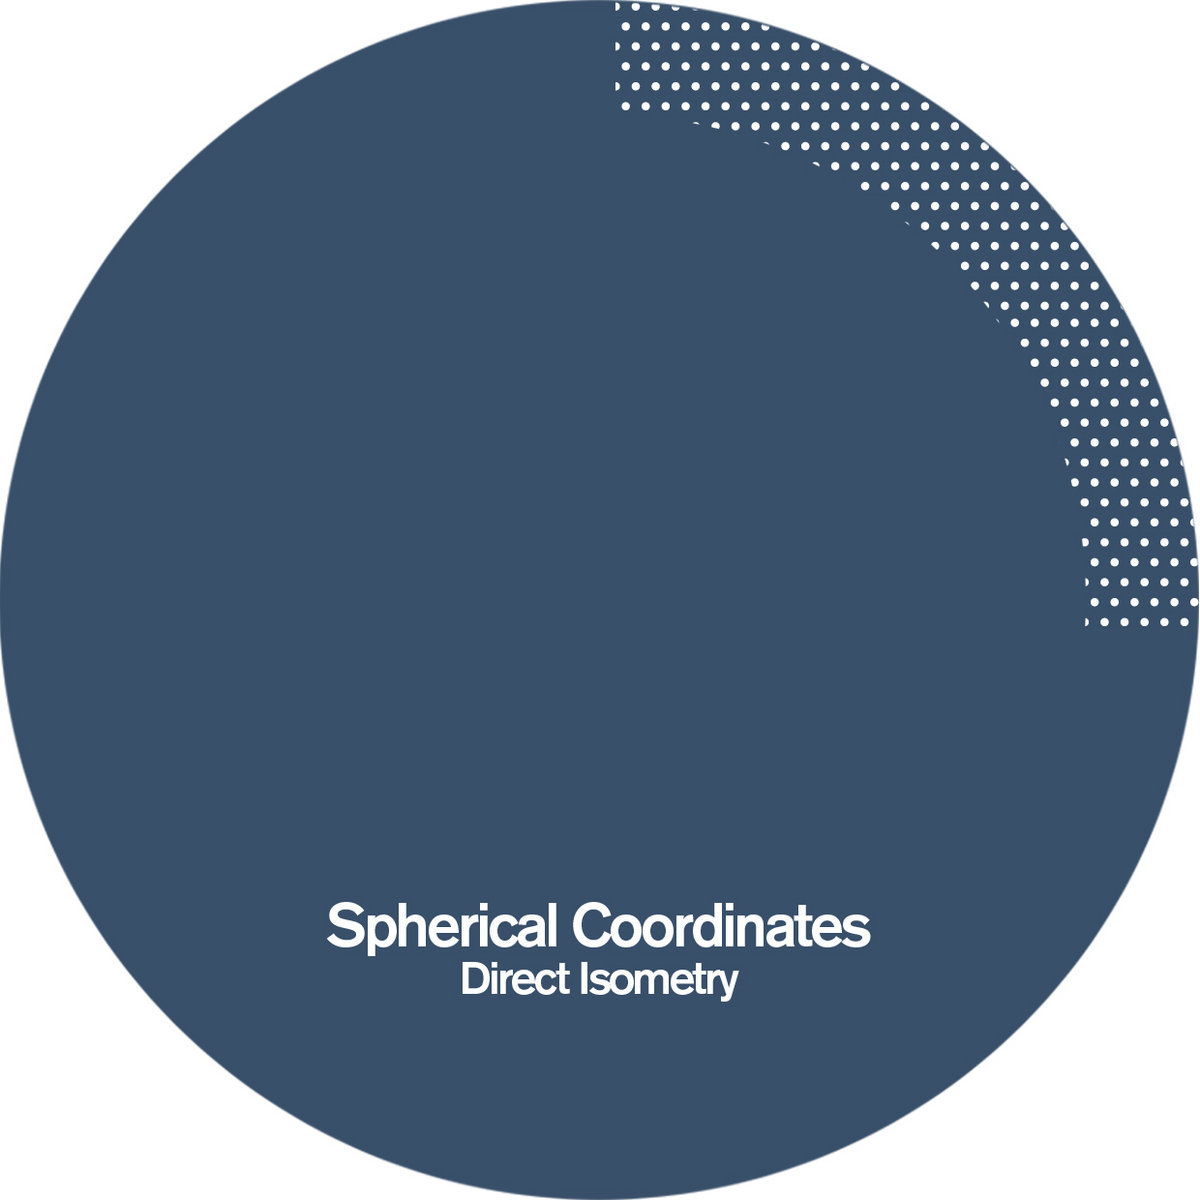 by Spherical Coordinates